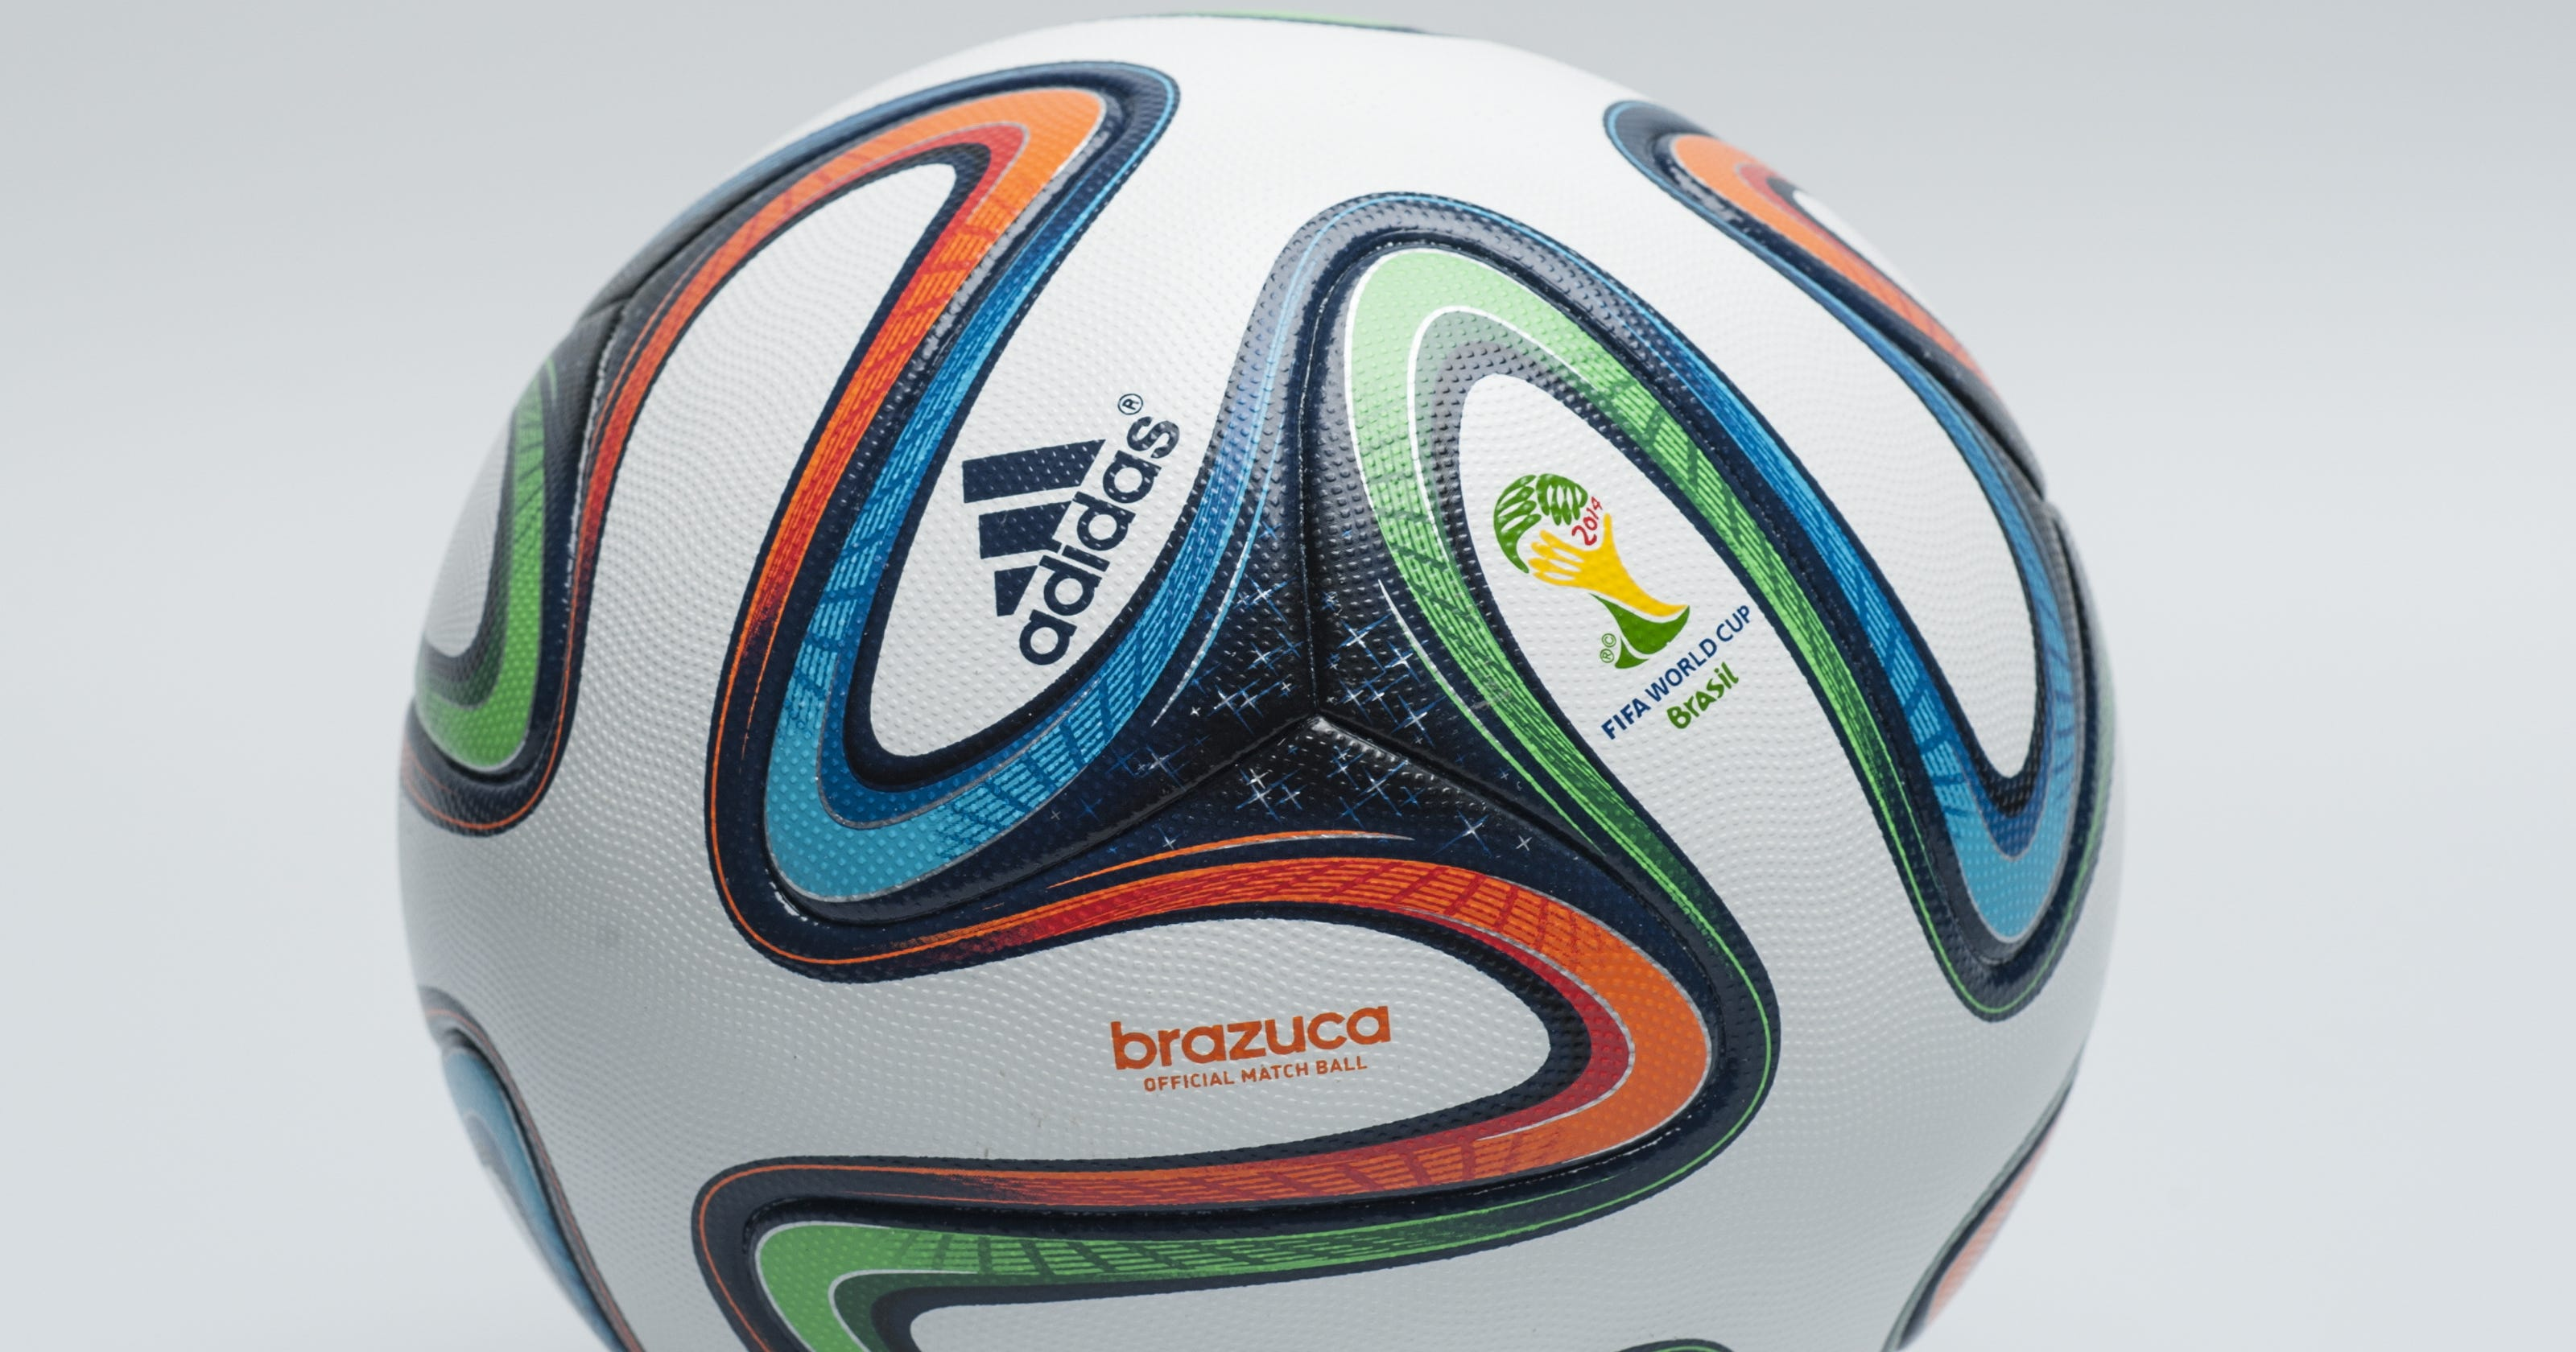 on sale 4c357 204d0 Adidas unveils Brazuca ball for World Cup in Brazil